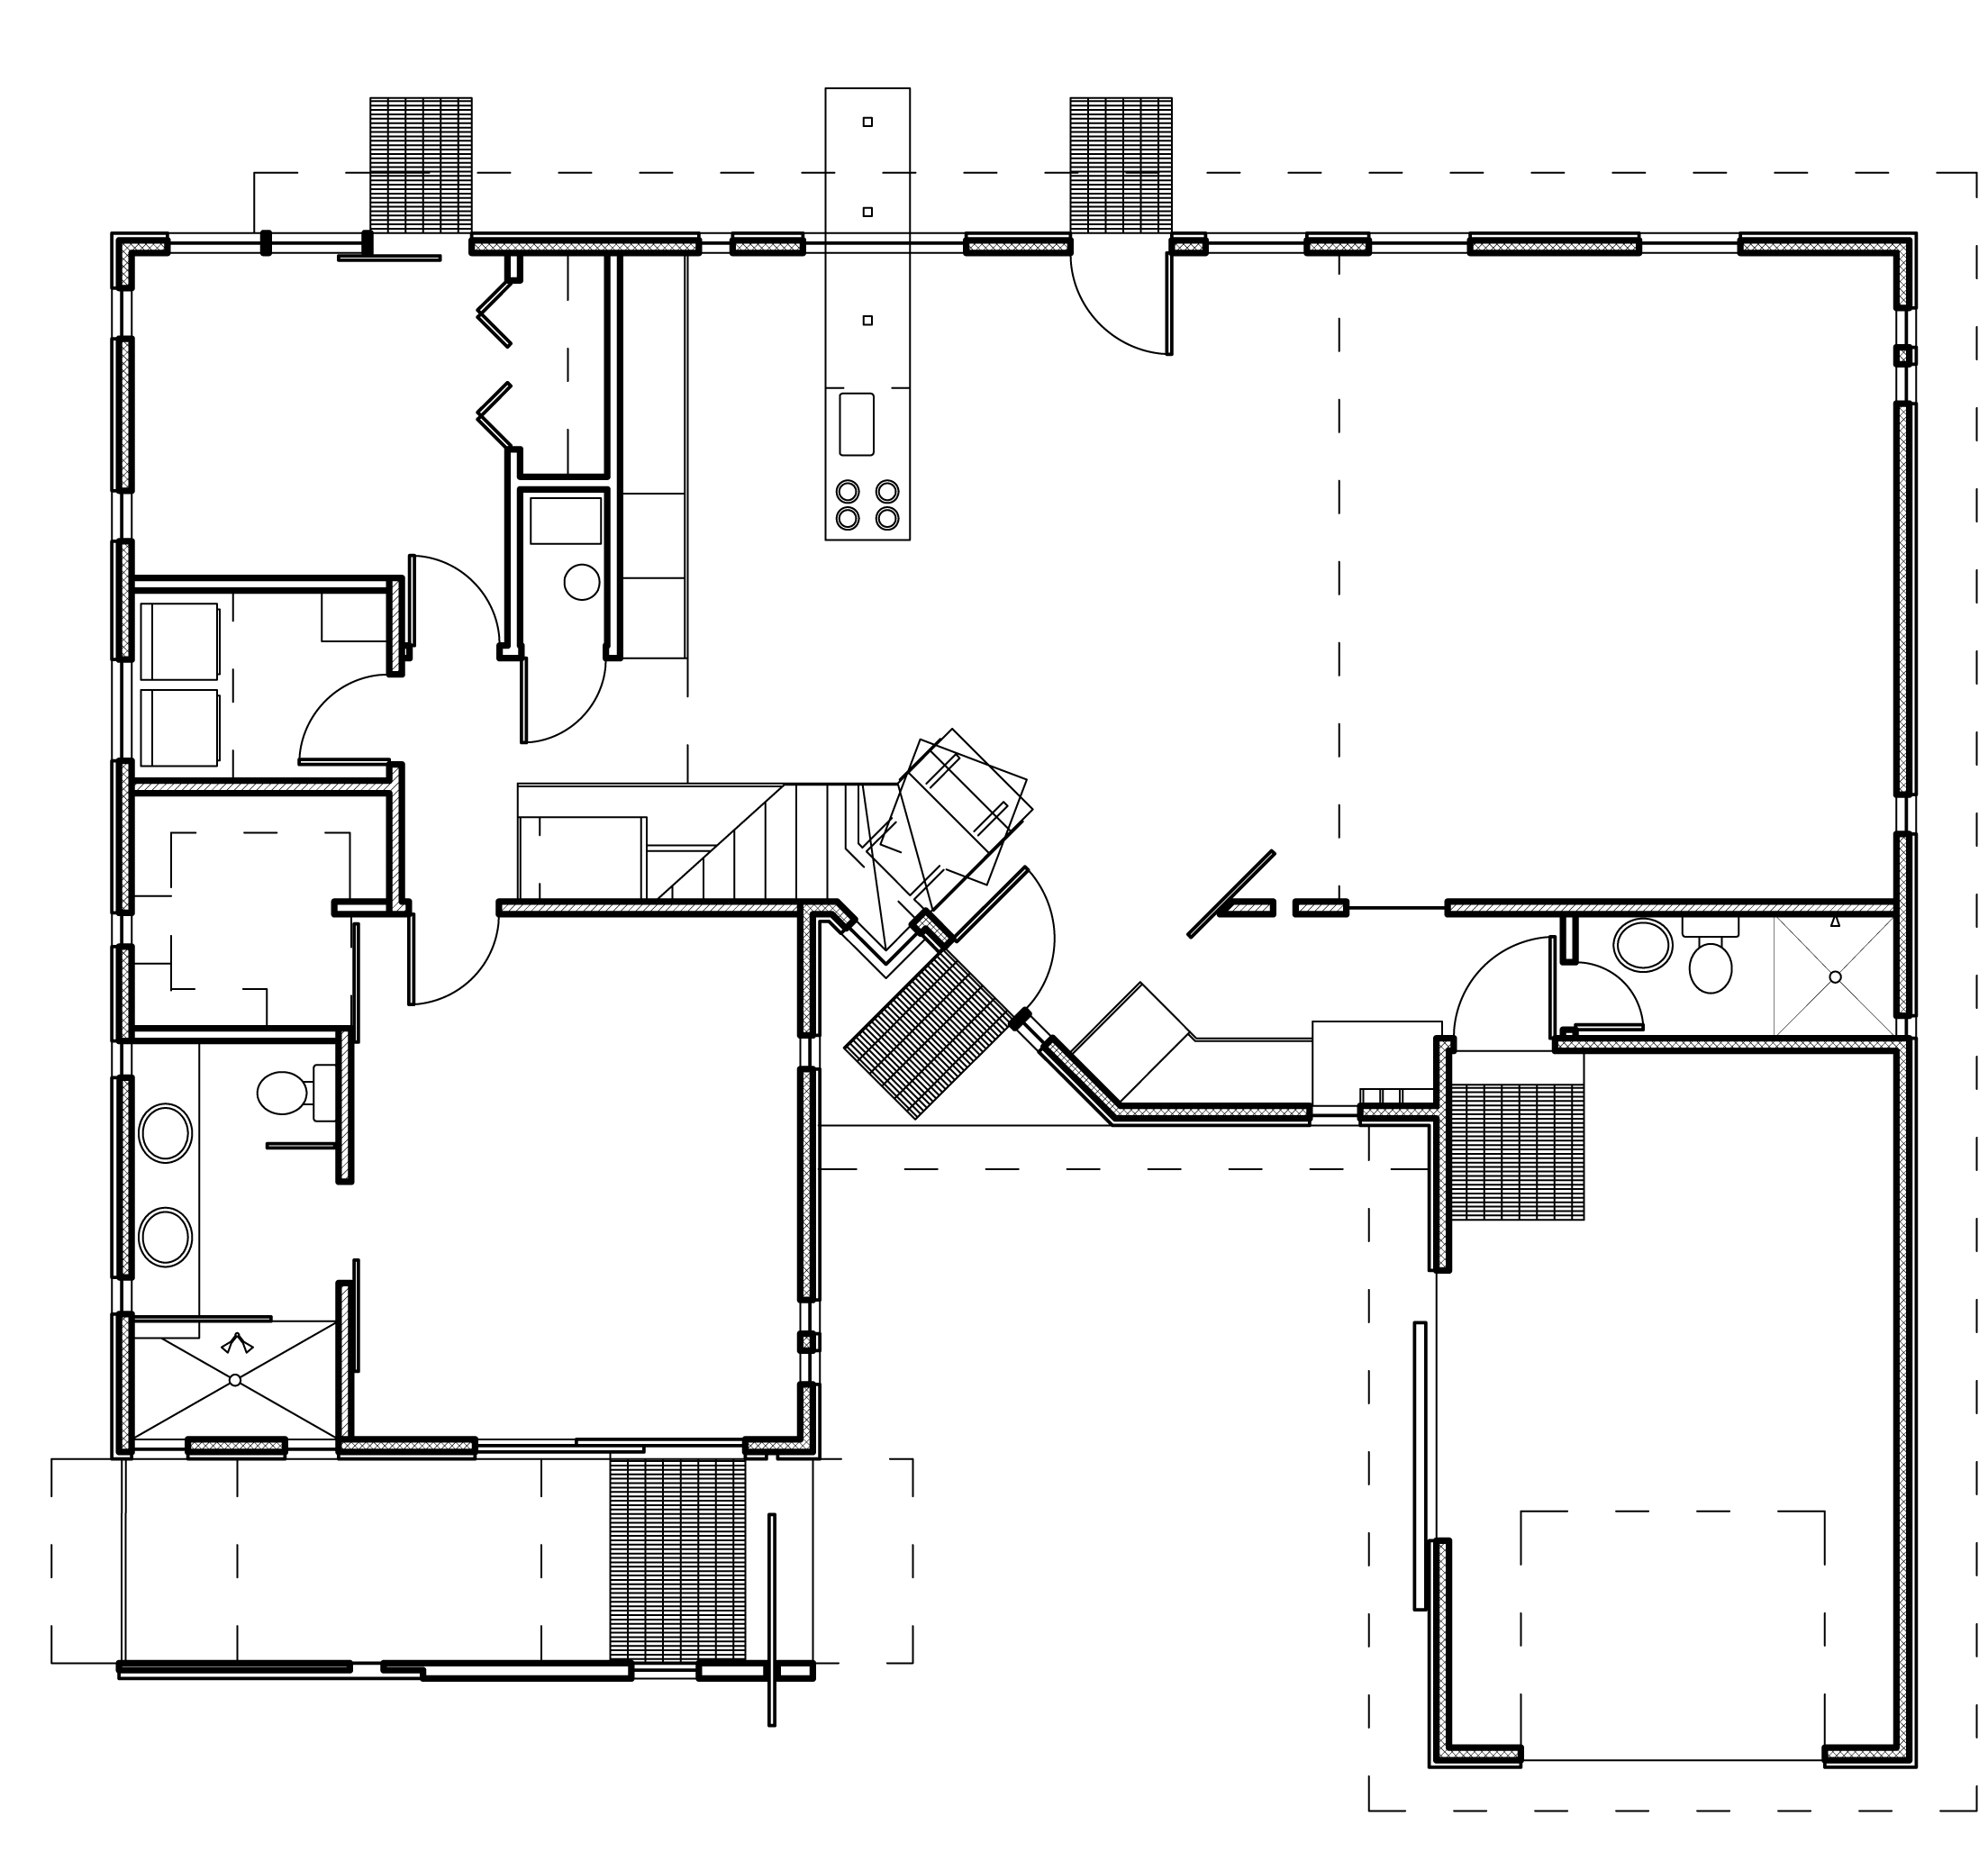 Modern house plans contemporary home designs floor plan 03 for Contemporary home floor plans